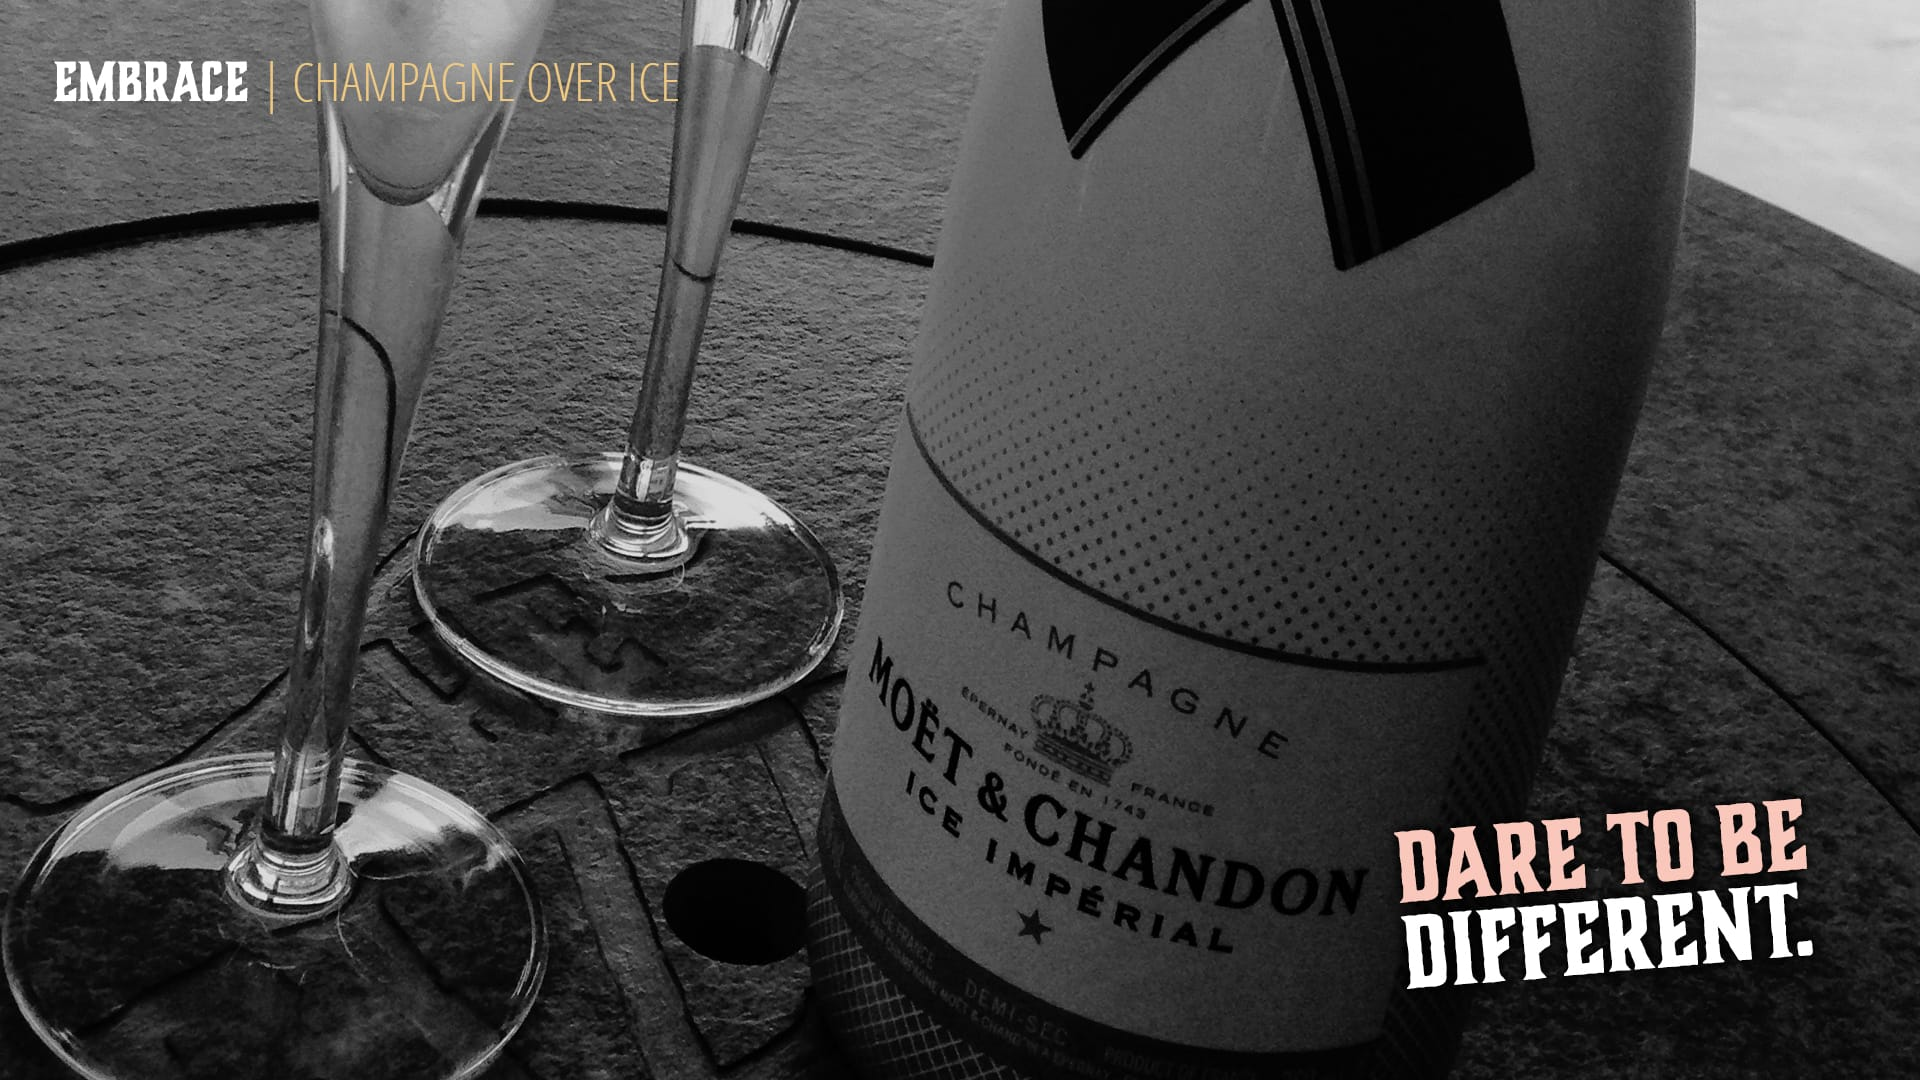 Moet Champagne over ice Dare To Be